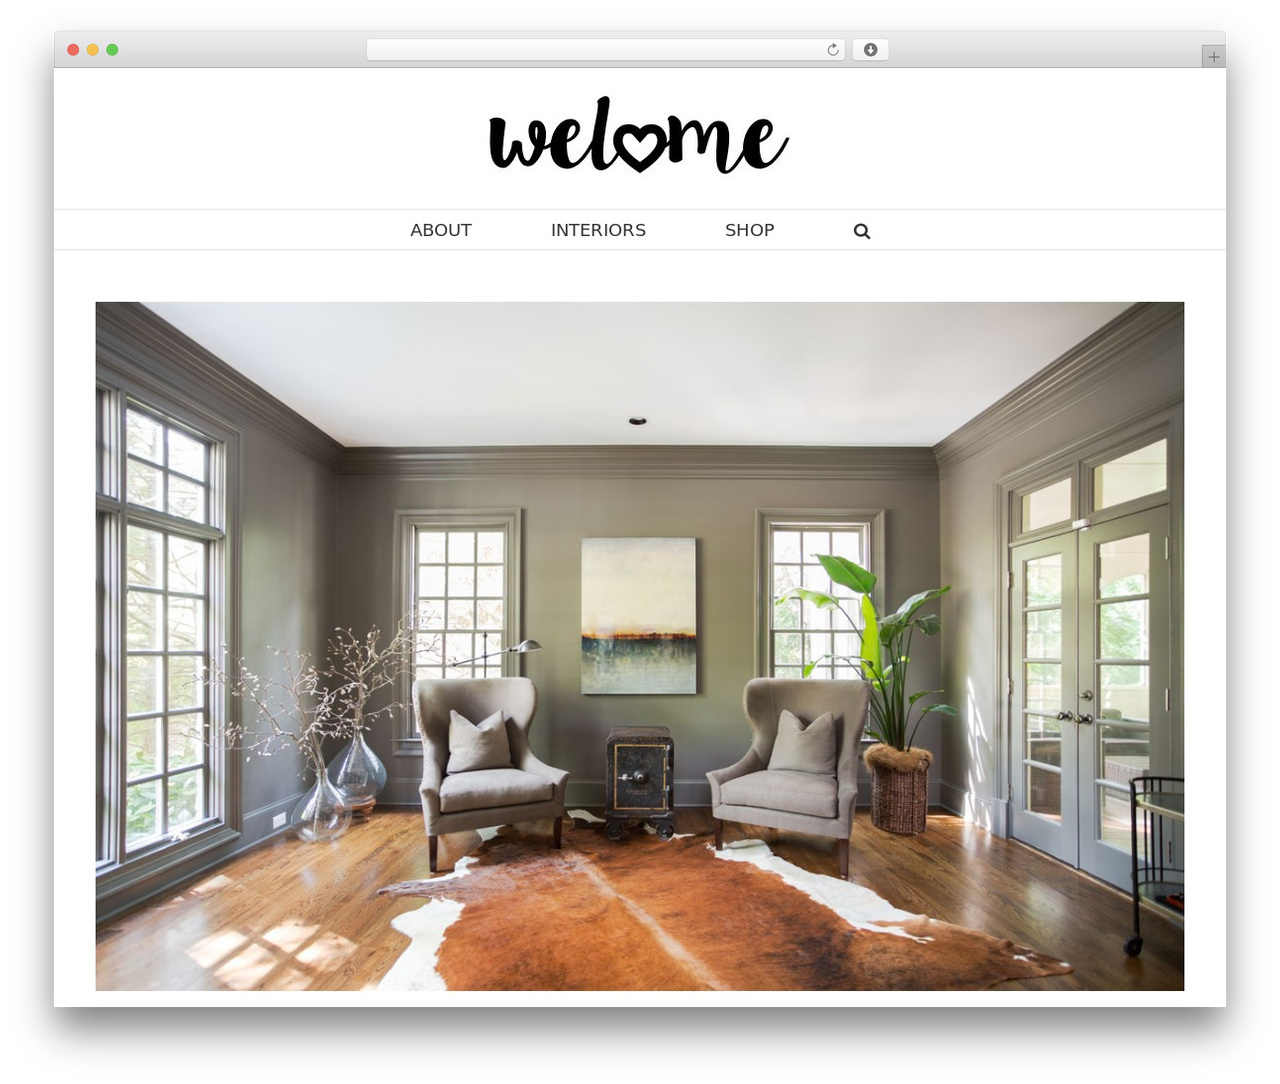 Avada premium WordPress theme - welome.com